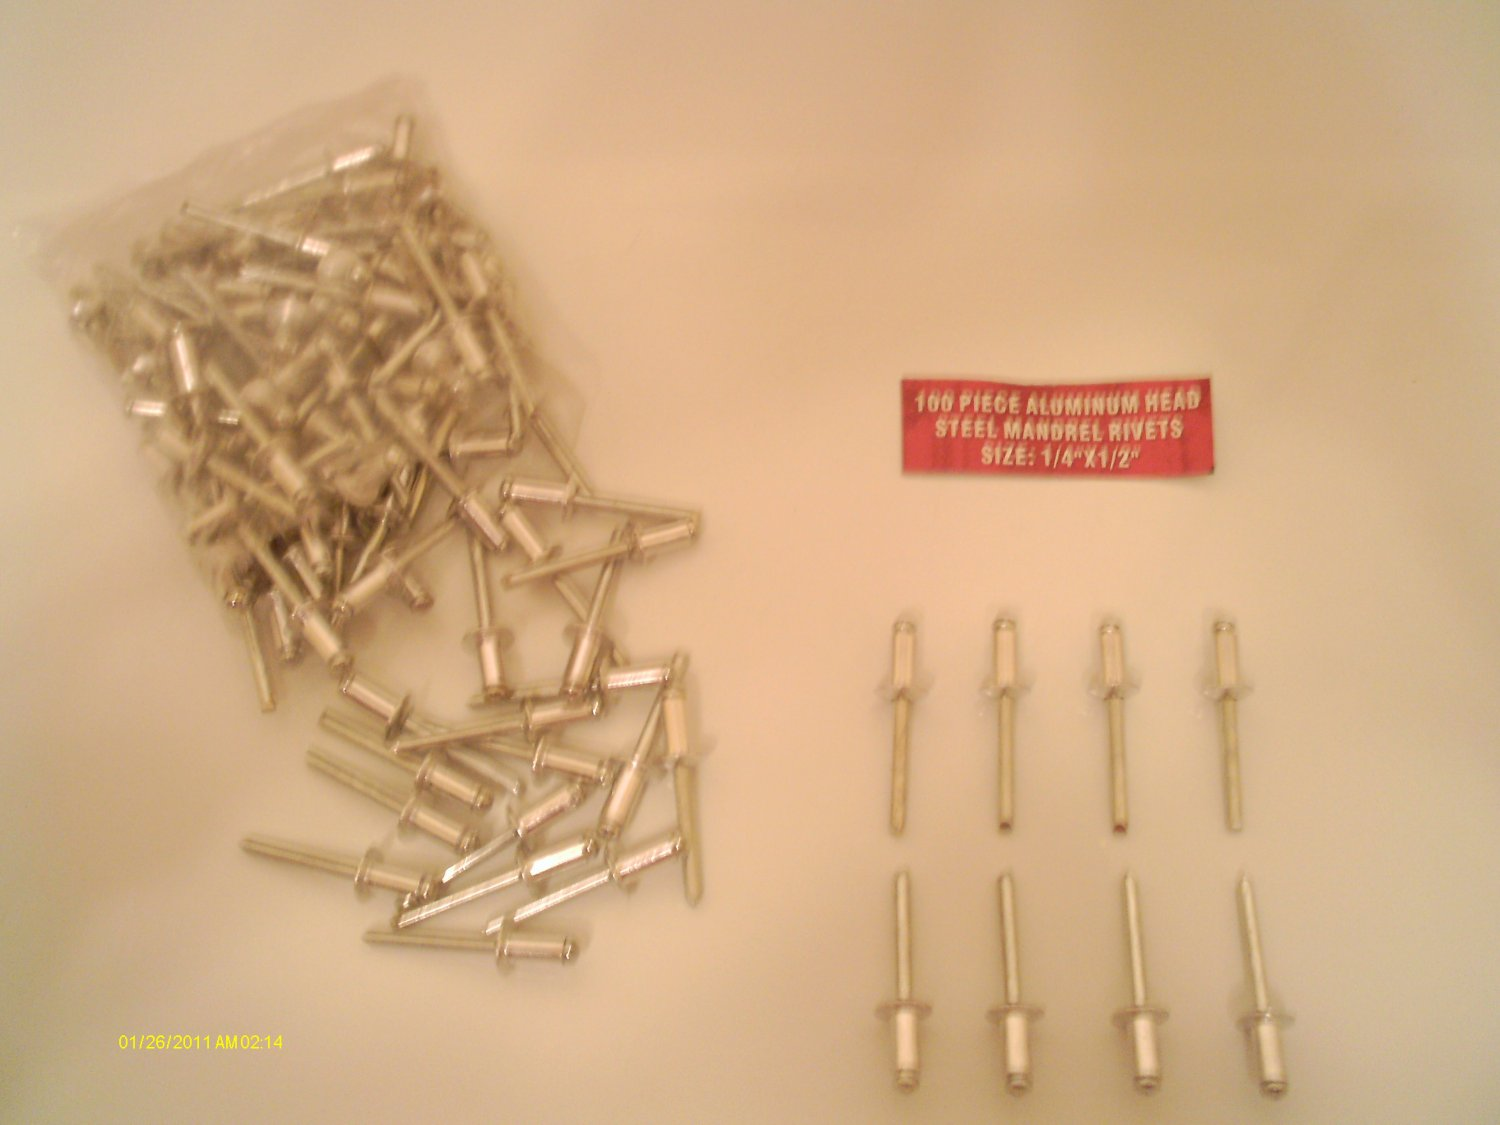 "New ALUMINUM POP RIVETS /steel mand 100 pcs 1/4"" x 1/2"" FREE SHIPPING within USA"